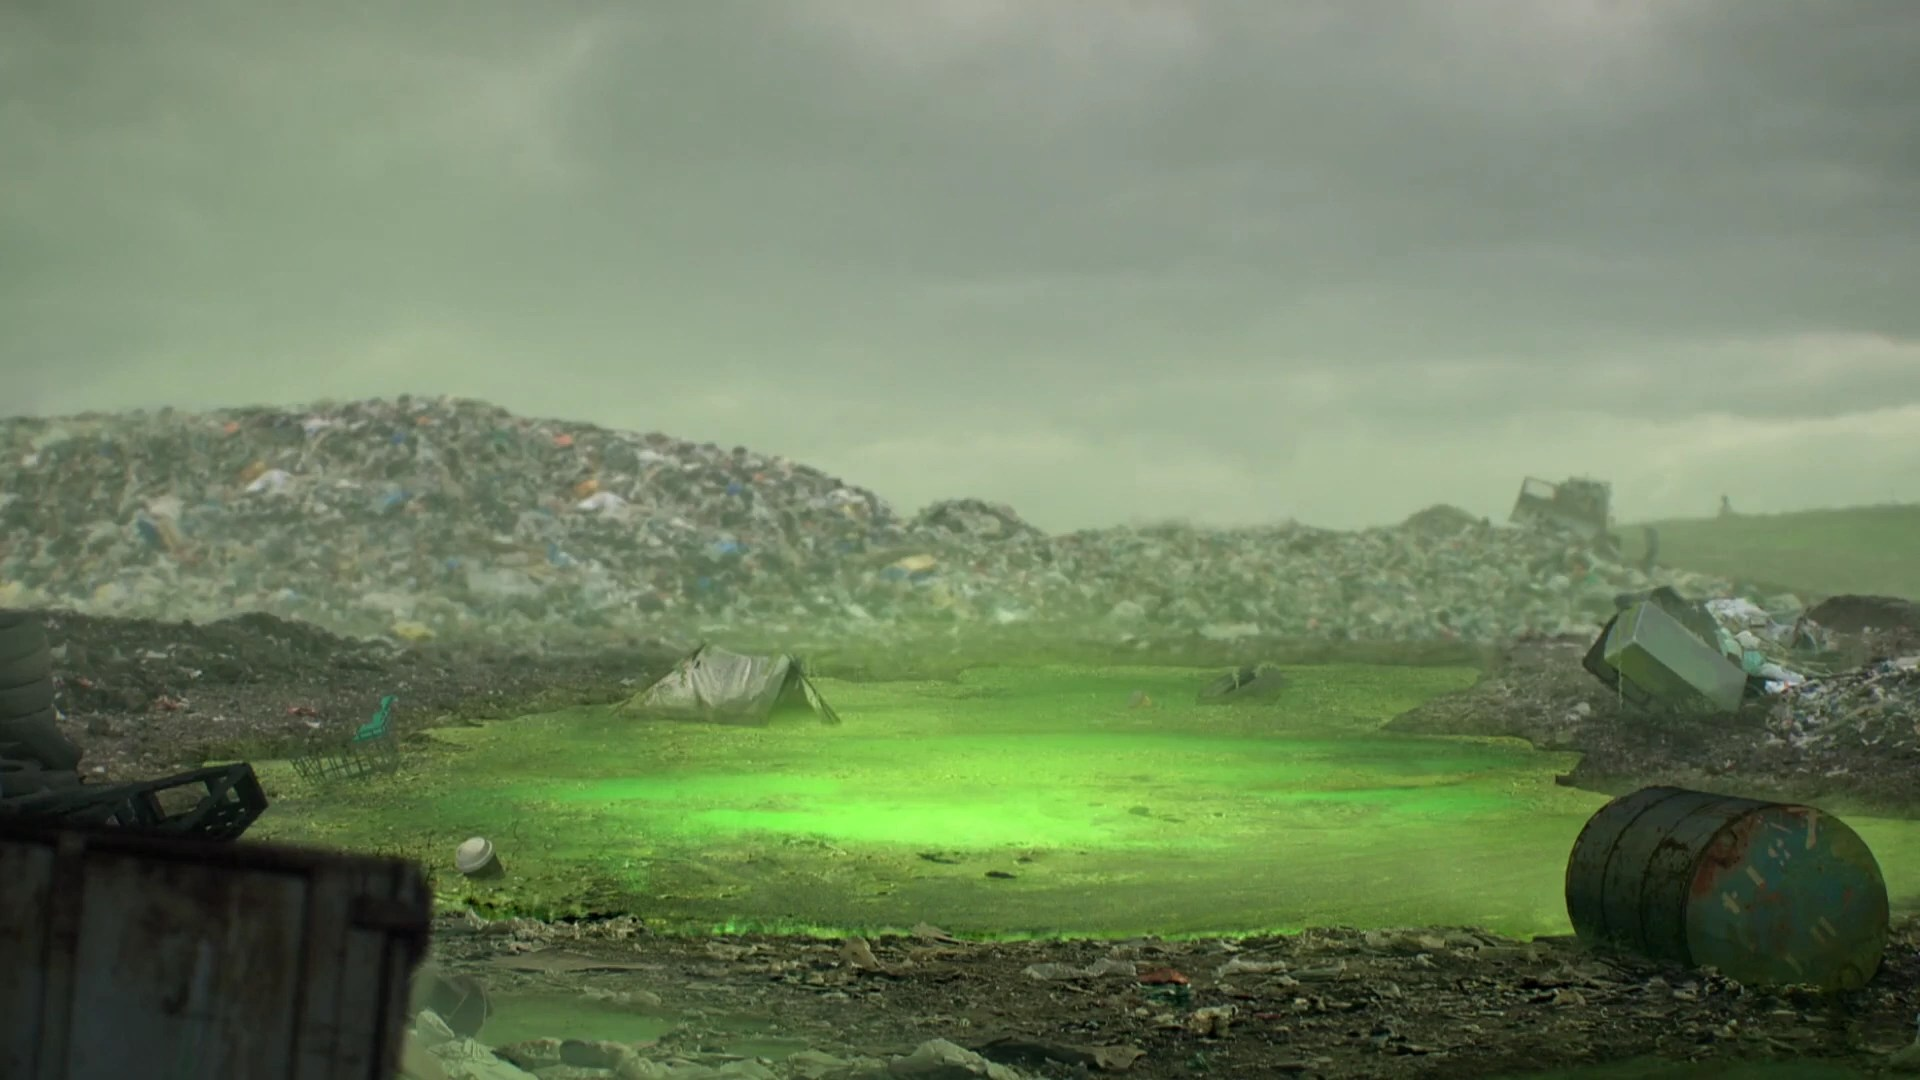 Classroom Wallpaper Hd Toxic Waste Disposal Site The Amazing World Of Gumball